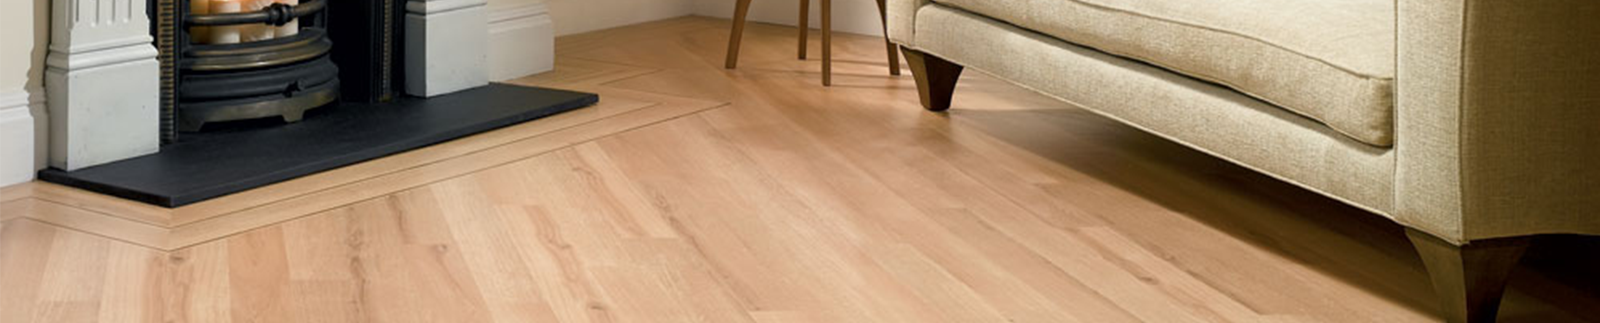 maverick-flooring-vinyl-slider